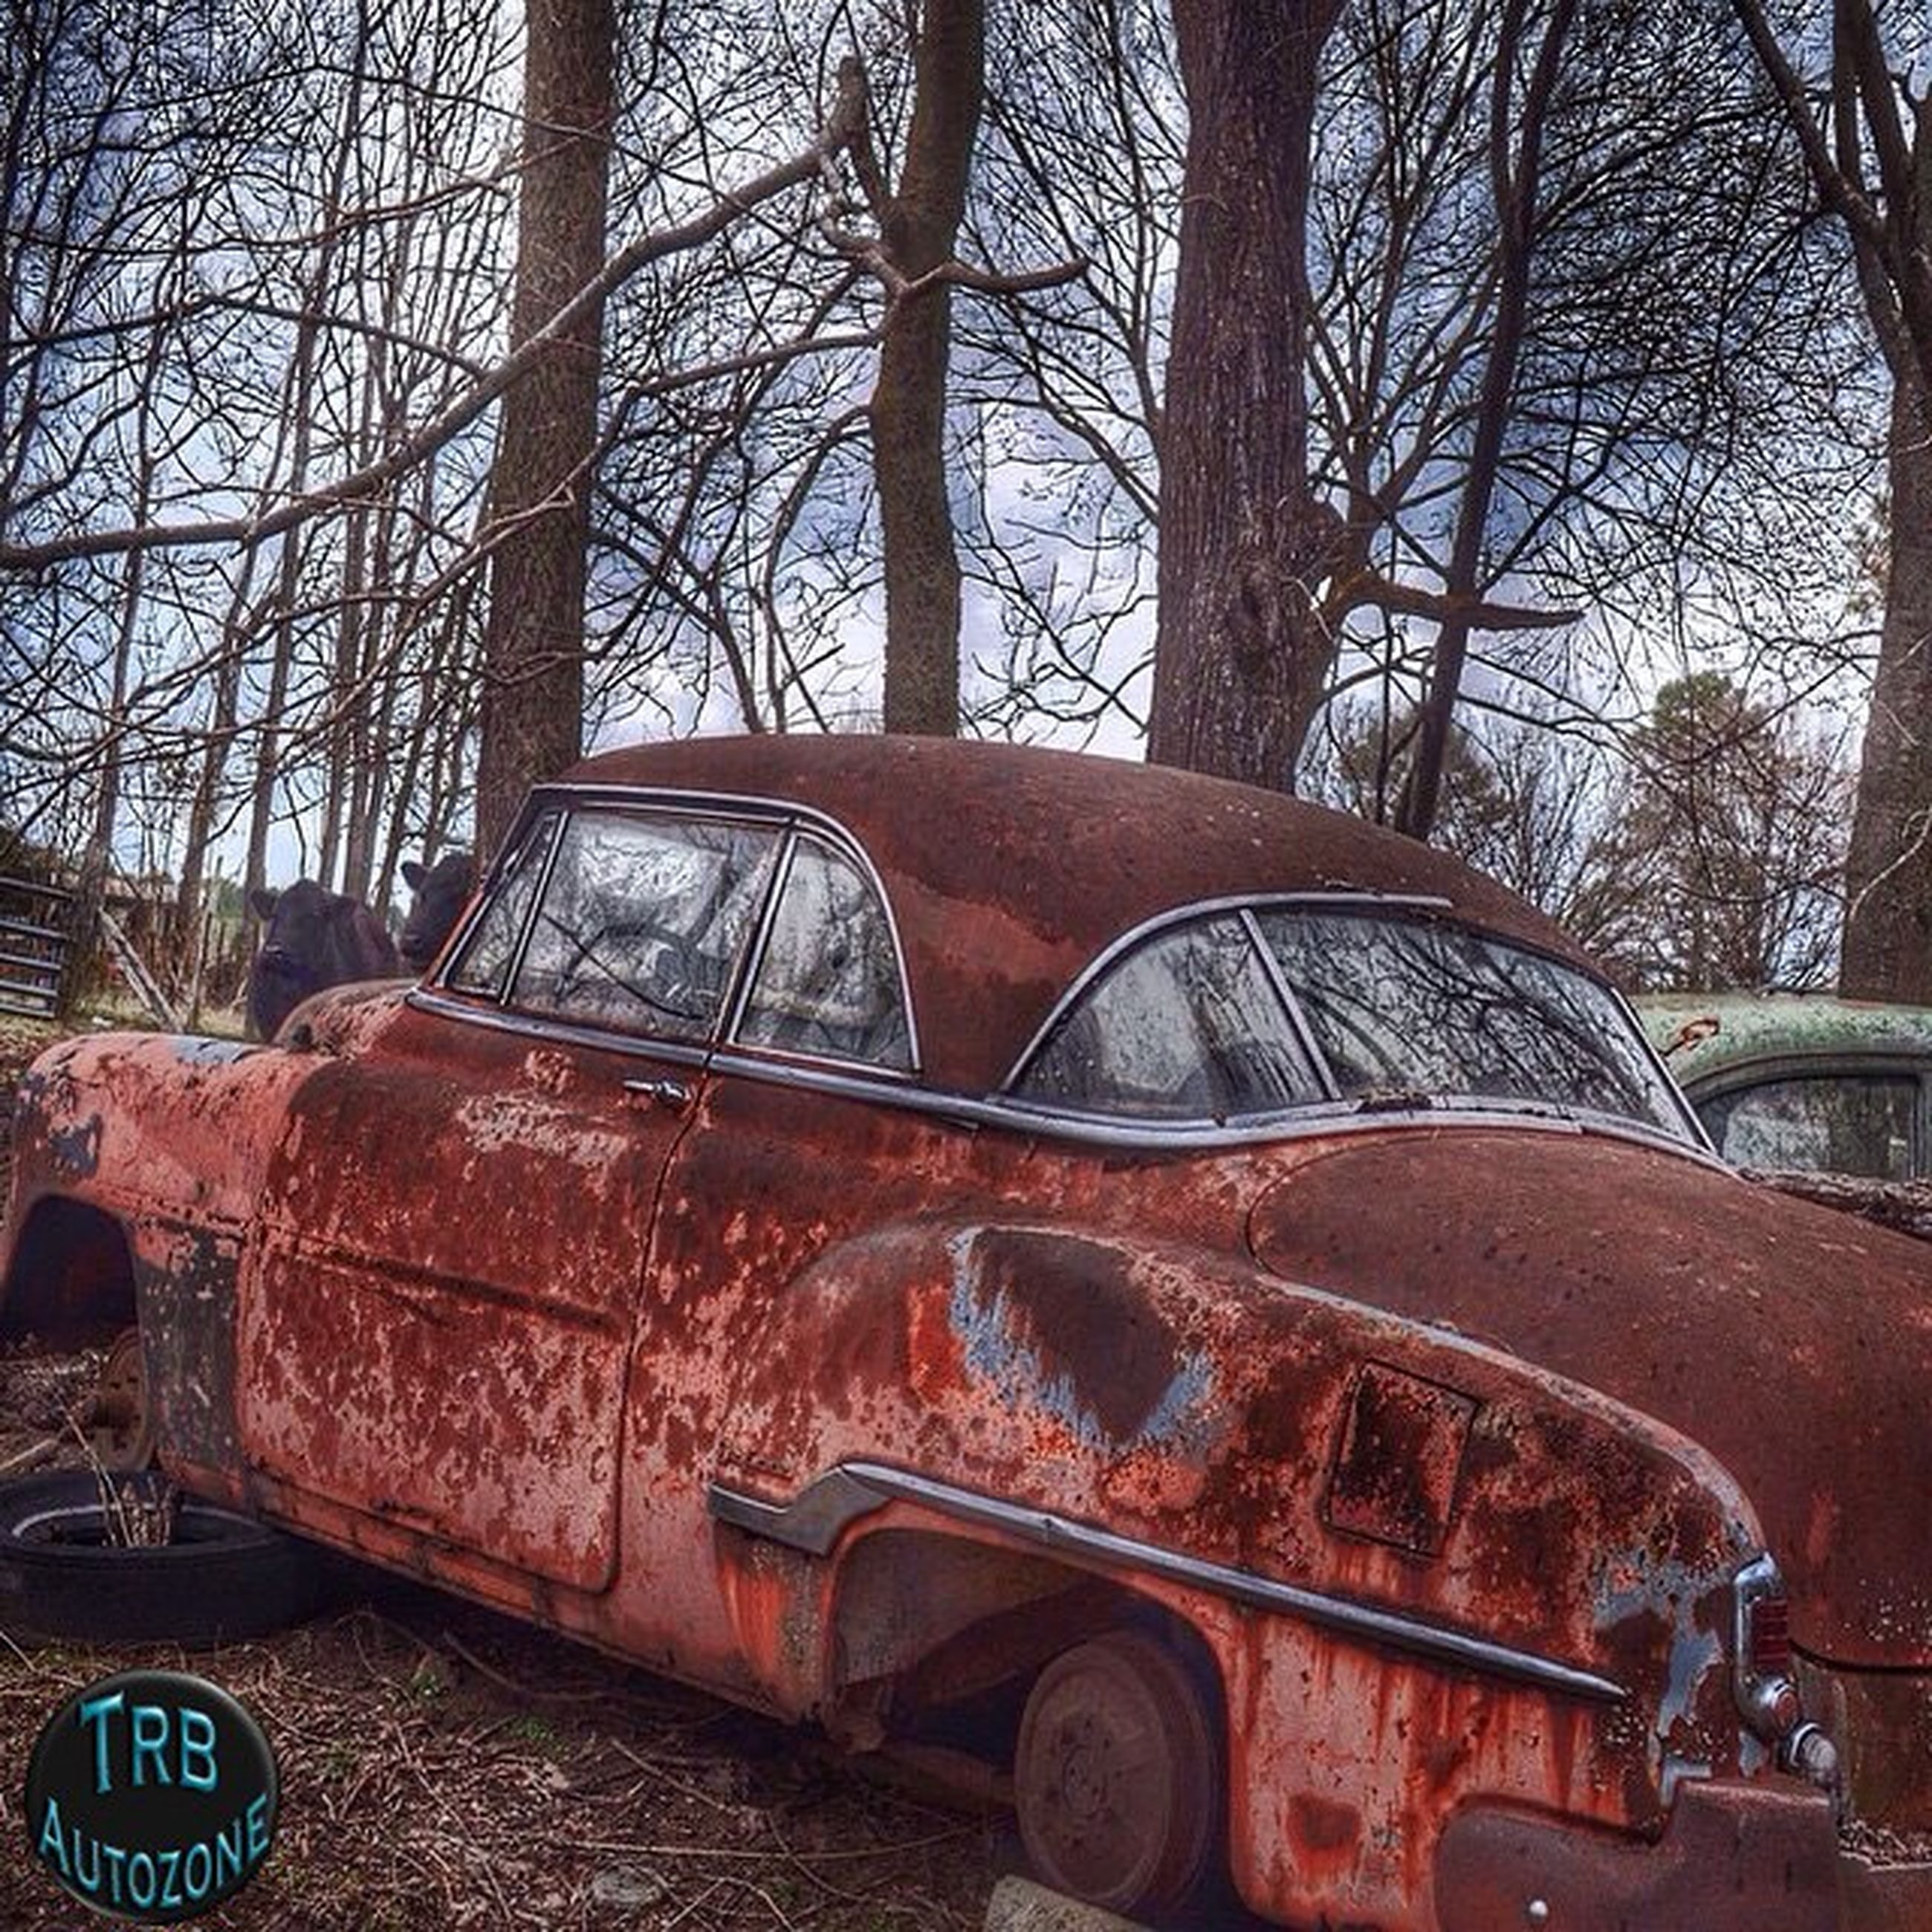 land vehicle, mode of transport, transportation, car, old, tree, old-fashioned, retro styled, part of, close-up, abandoned, obsolete, day, outdoors, no people, cropped, bare tree, stationary, damaged, metal